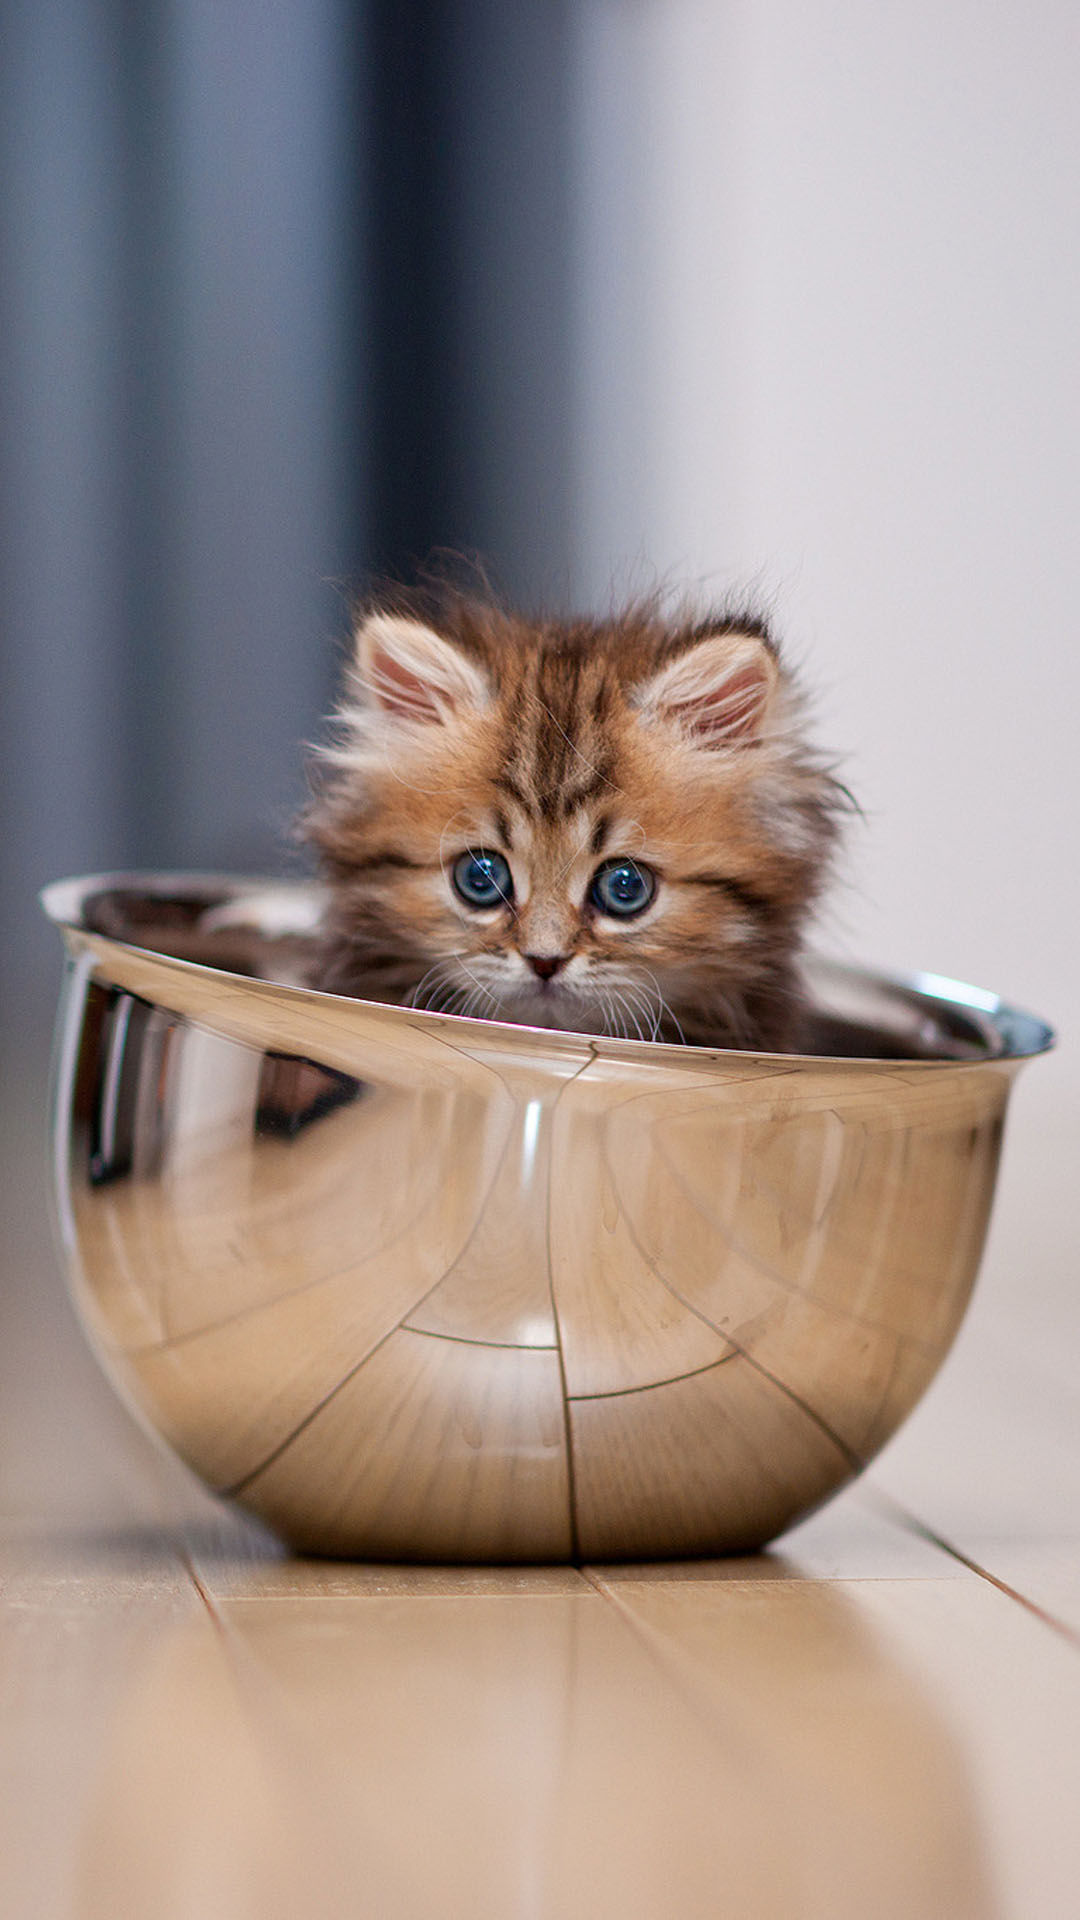 cute kitten in a bowl